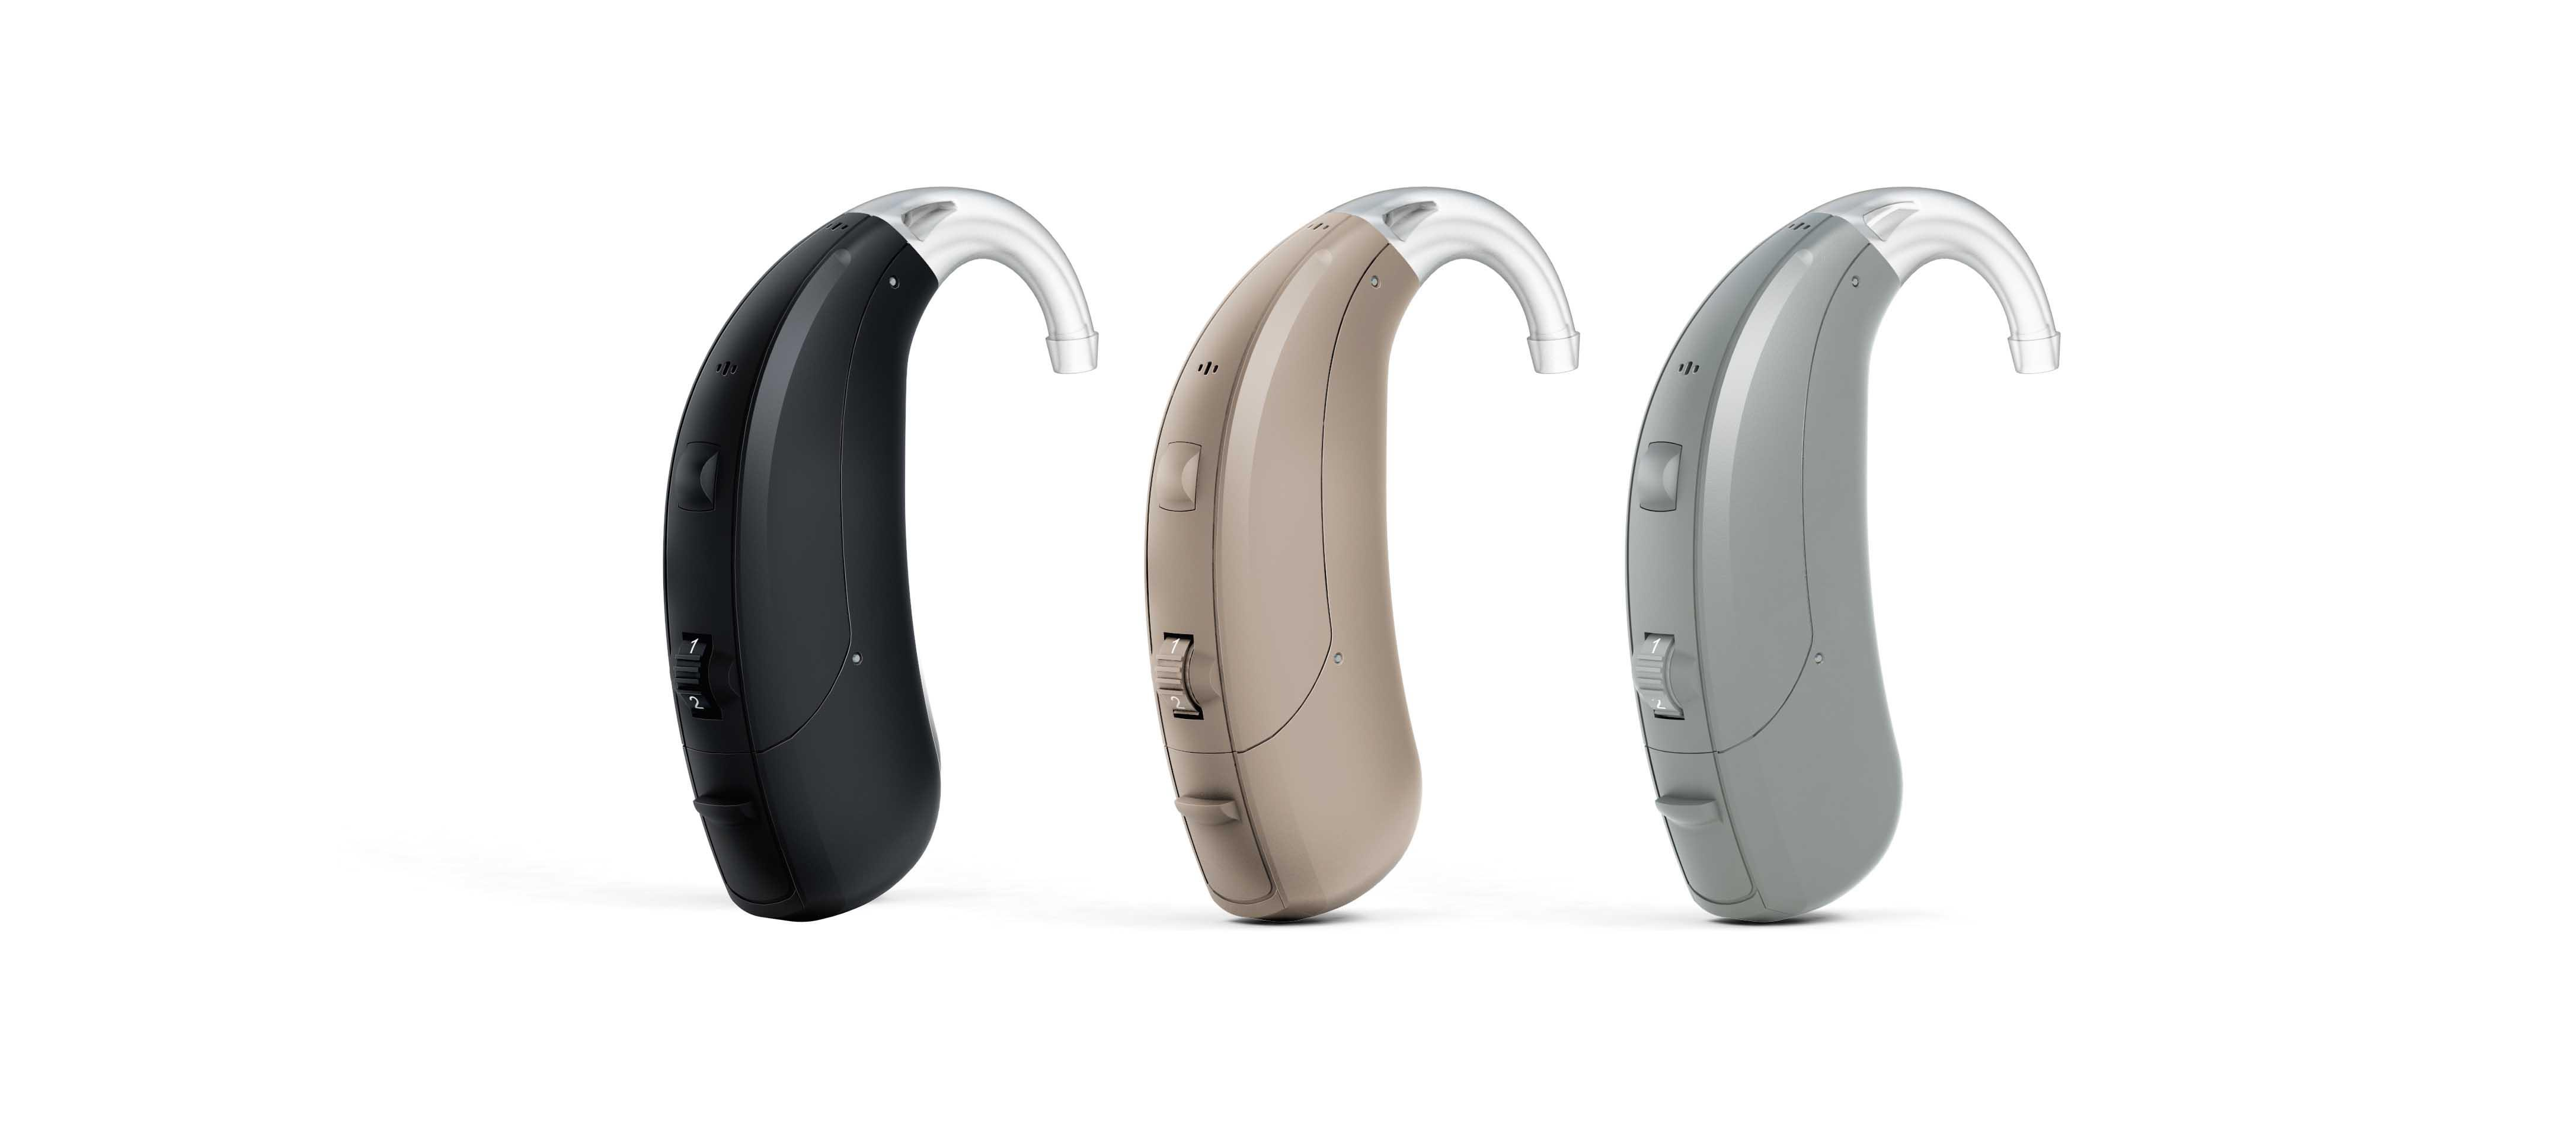 Interton Gain hearing aids are available in three colors: black, beige and grey.